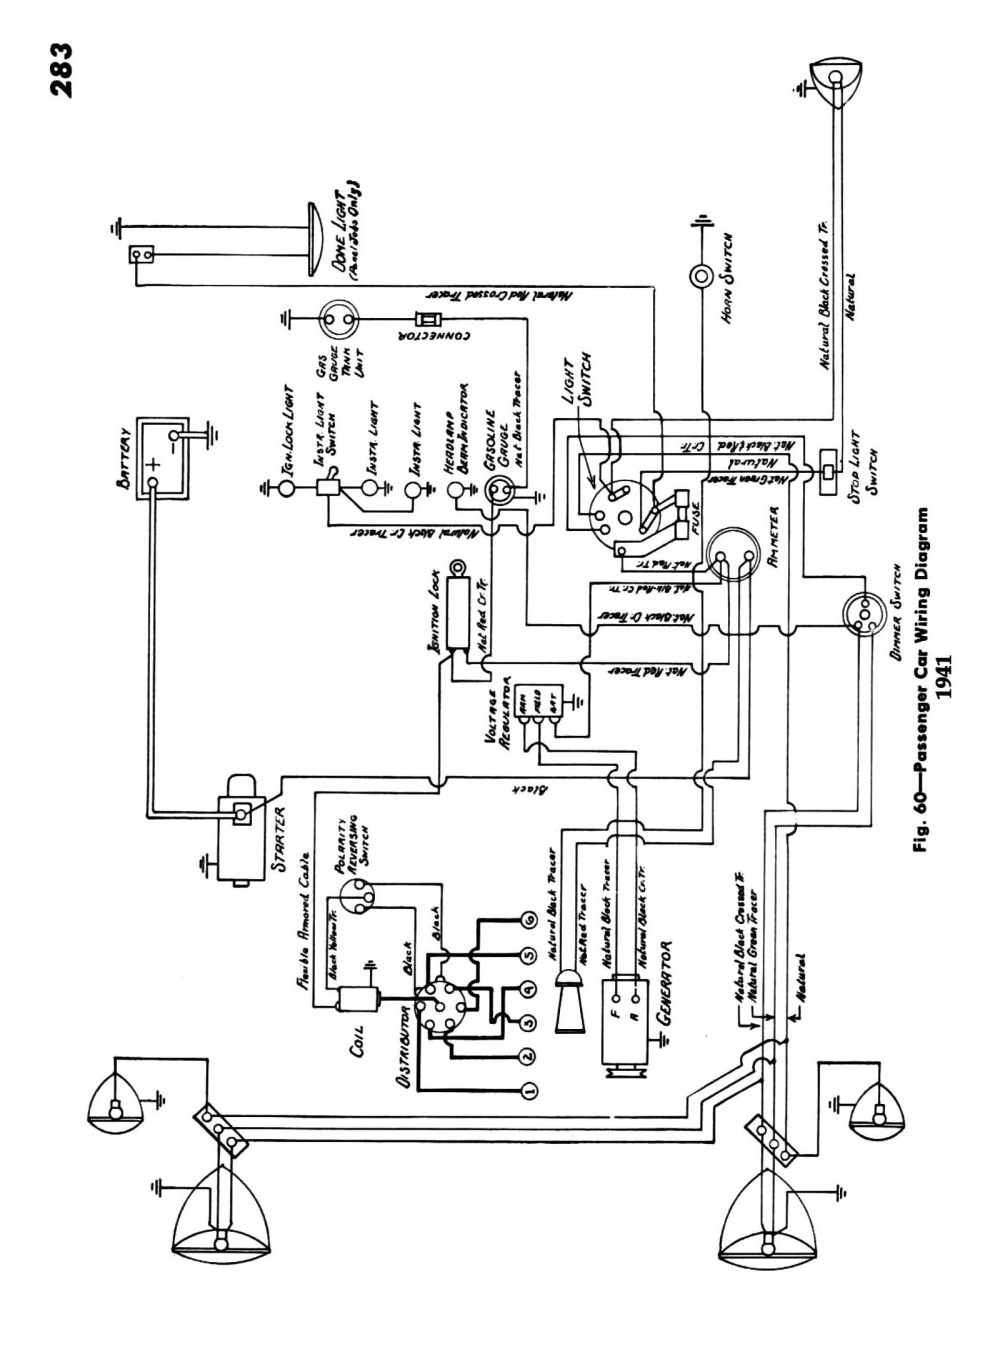 medium resolution of 1958 chevy truck wiring diagram wiring diagram todays chevrolet straight 6 engine 235 chevy engine wiring diagram